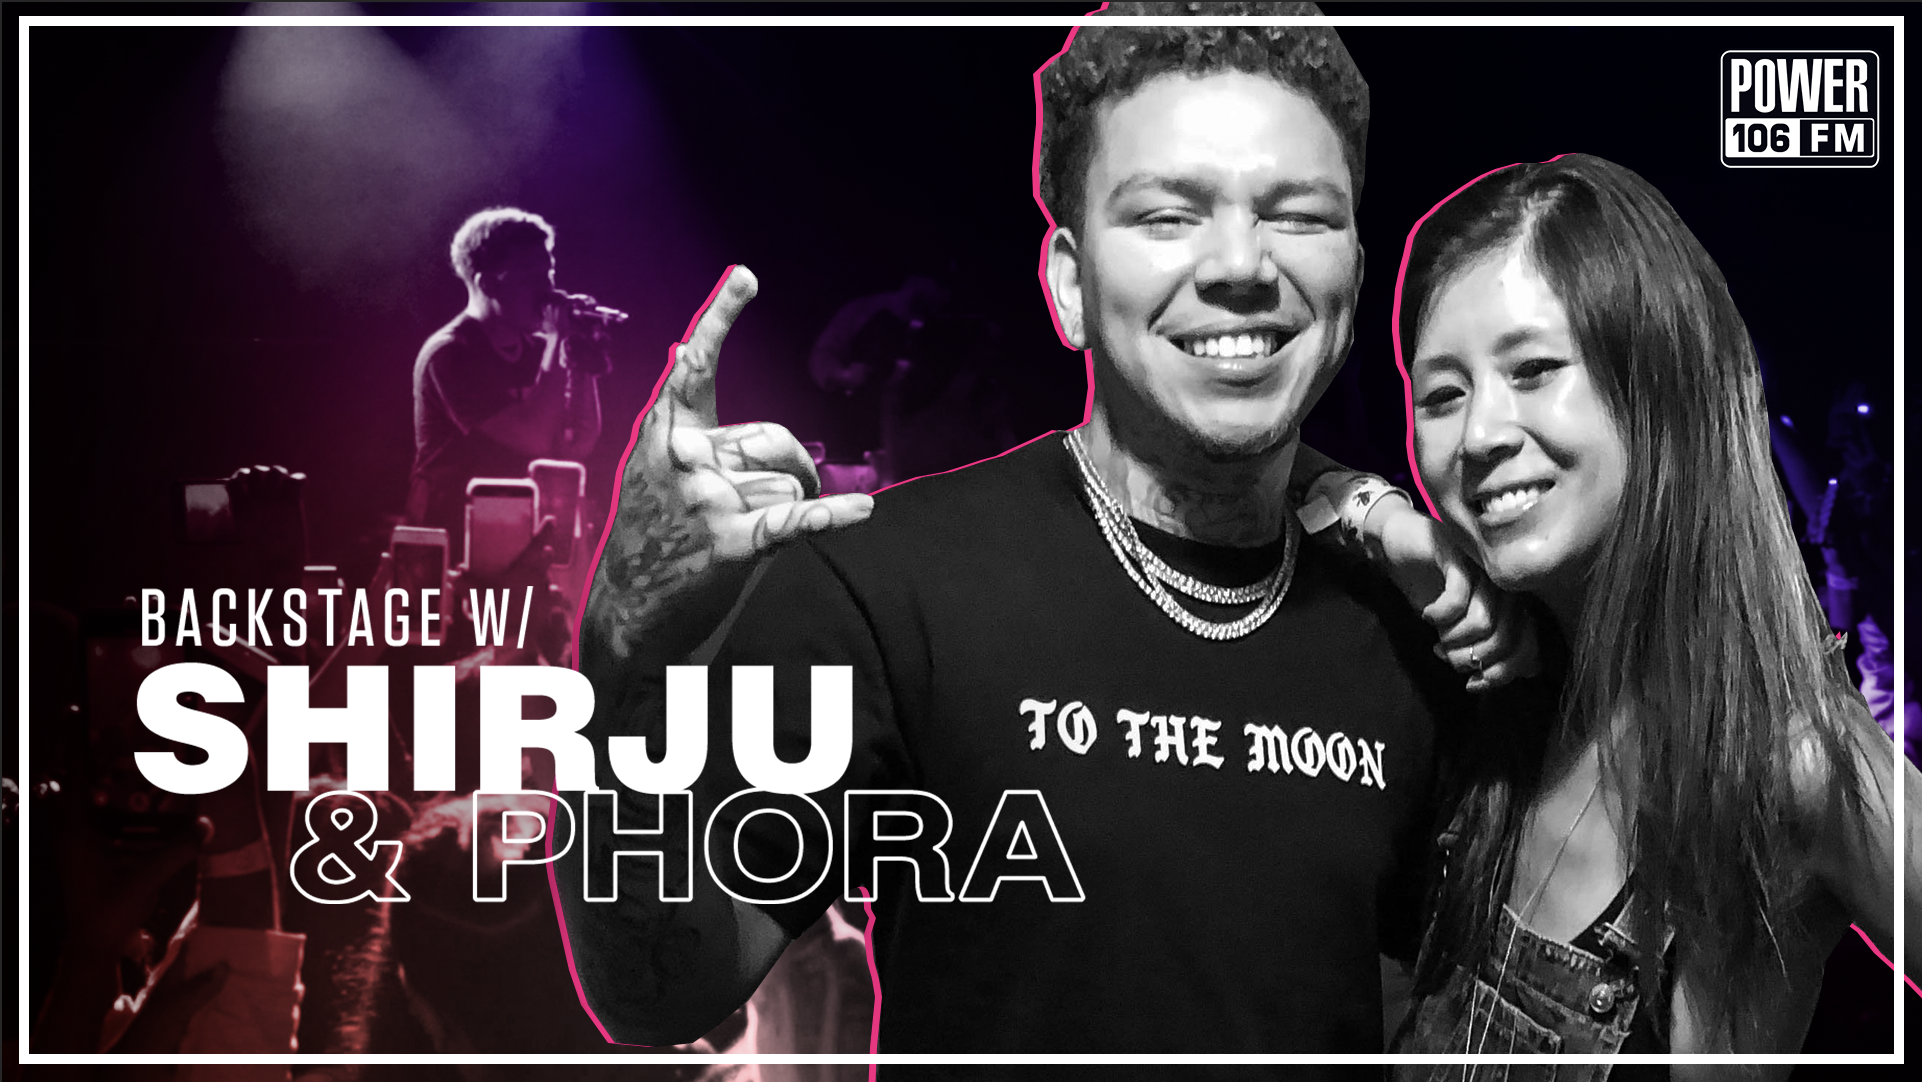 Phora breaks down pre-show rituals, getting over his nerves & favorite song to perform